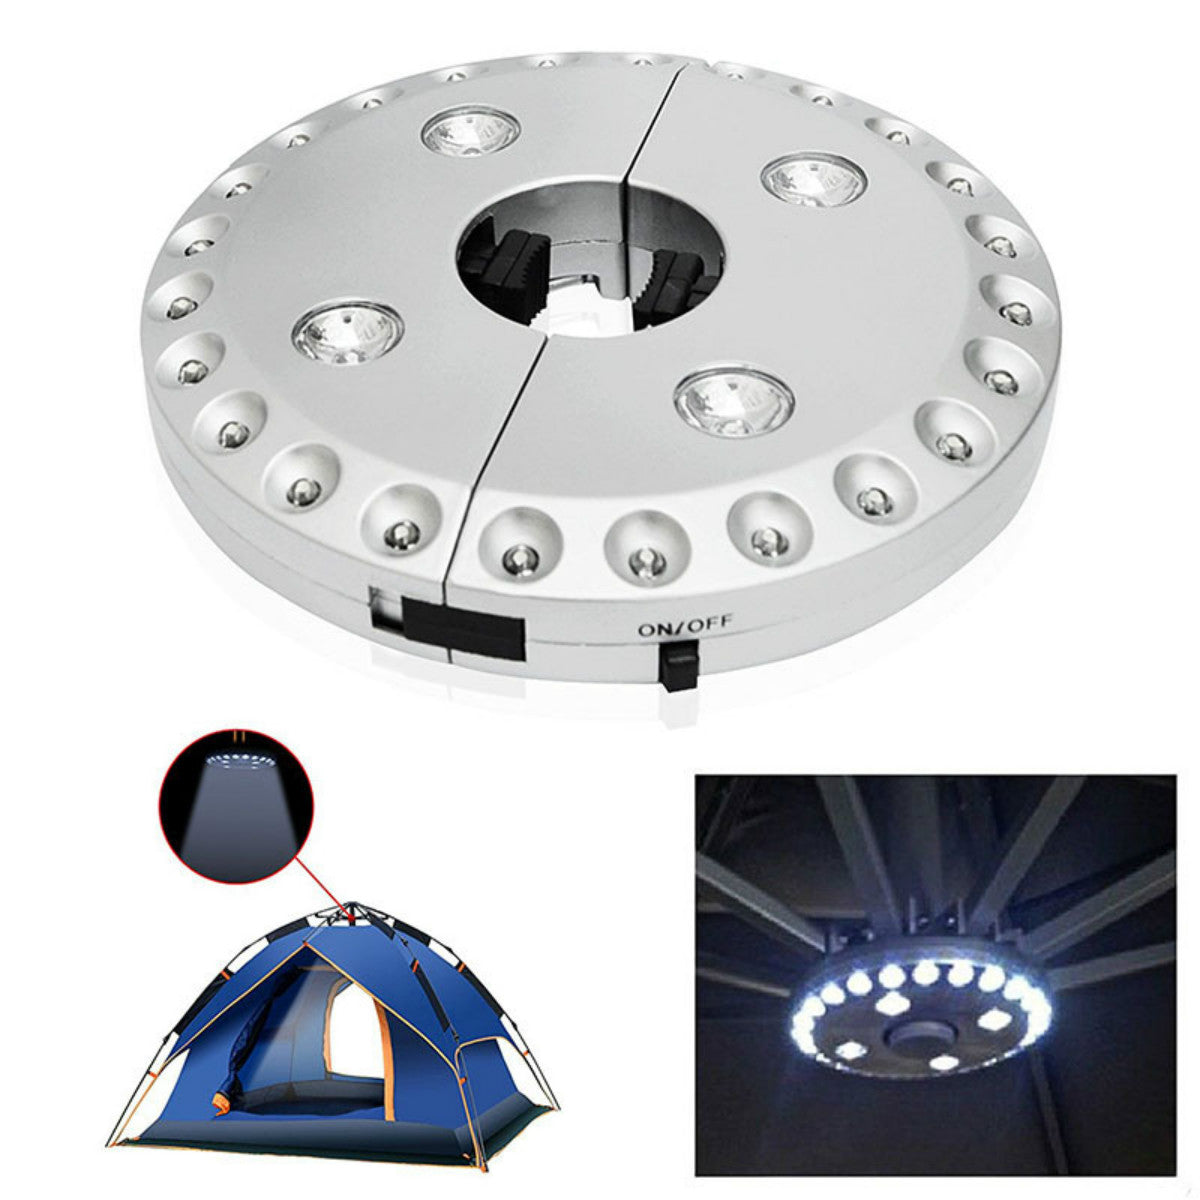 Upgraded Patio Umbrella Light 3 Lighting Modes 28 LED Lights at 200 Lumens - 4 x AA Battery Operated, Umbrella Pole Light Camping Lights for Umbrellas,Camping Tents or Outdoor Use